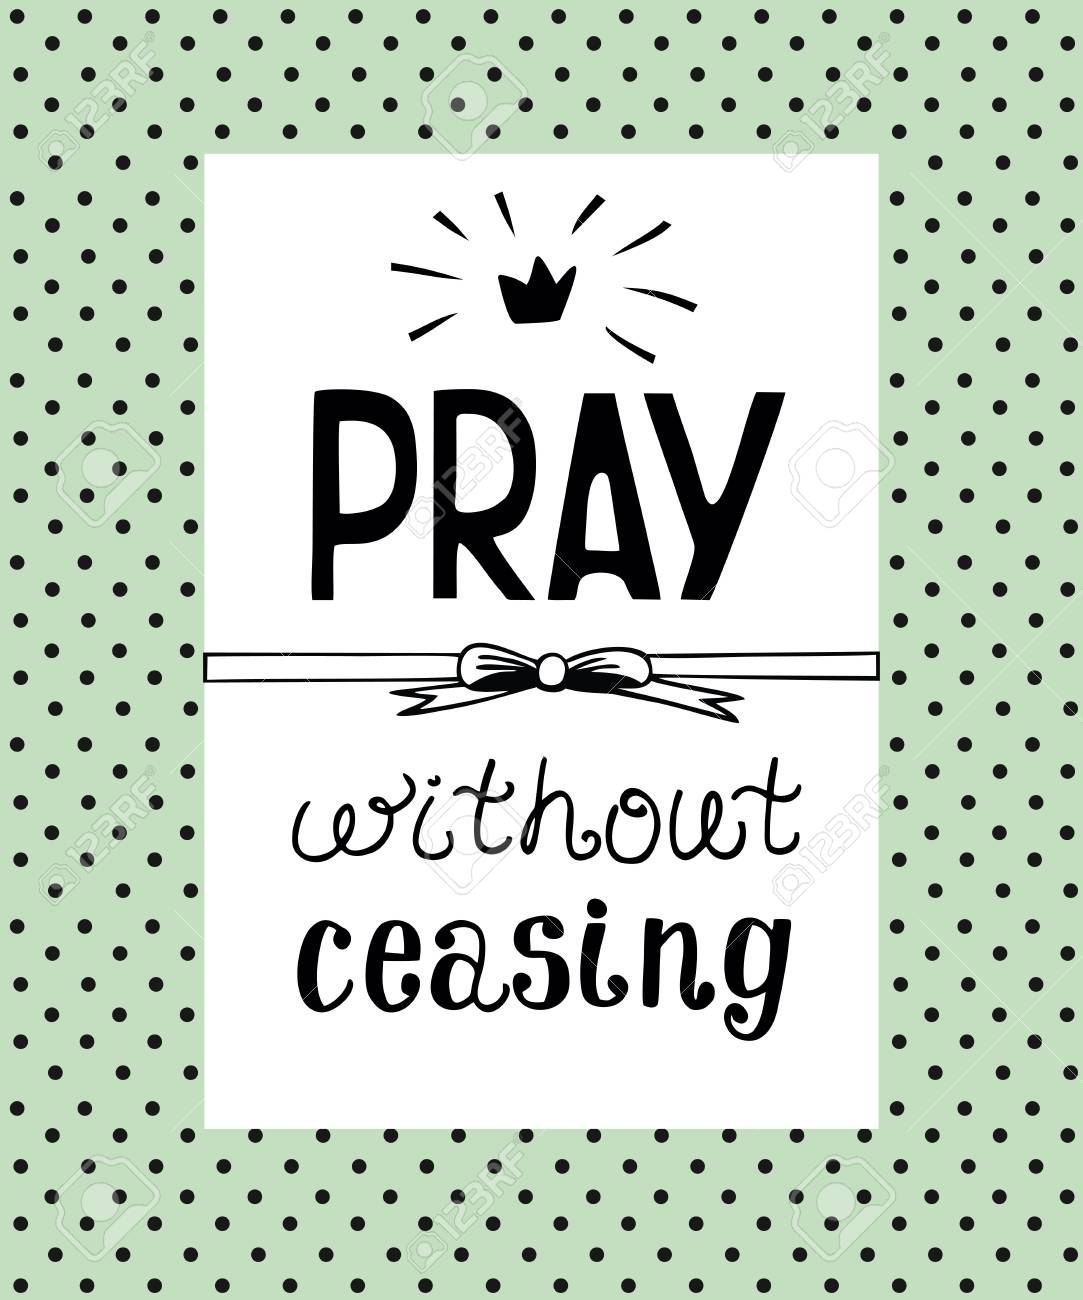 Hand lettering Pray without ceasing, made on the backgrop of polka dot. Biblical background